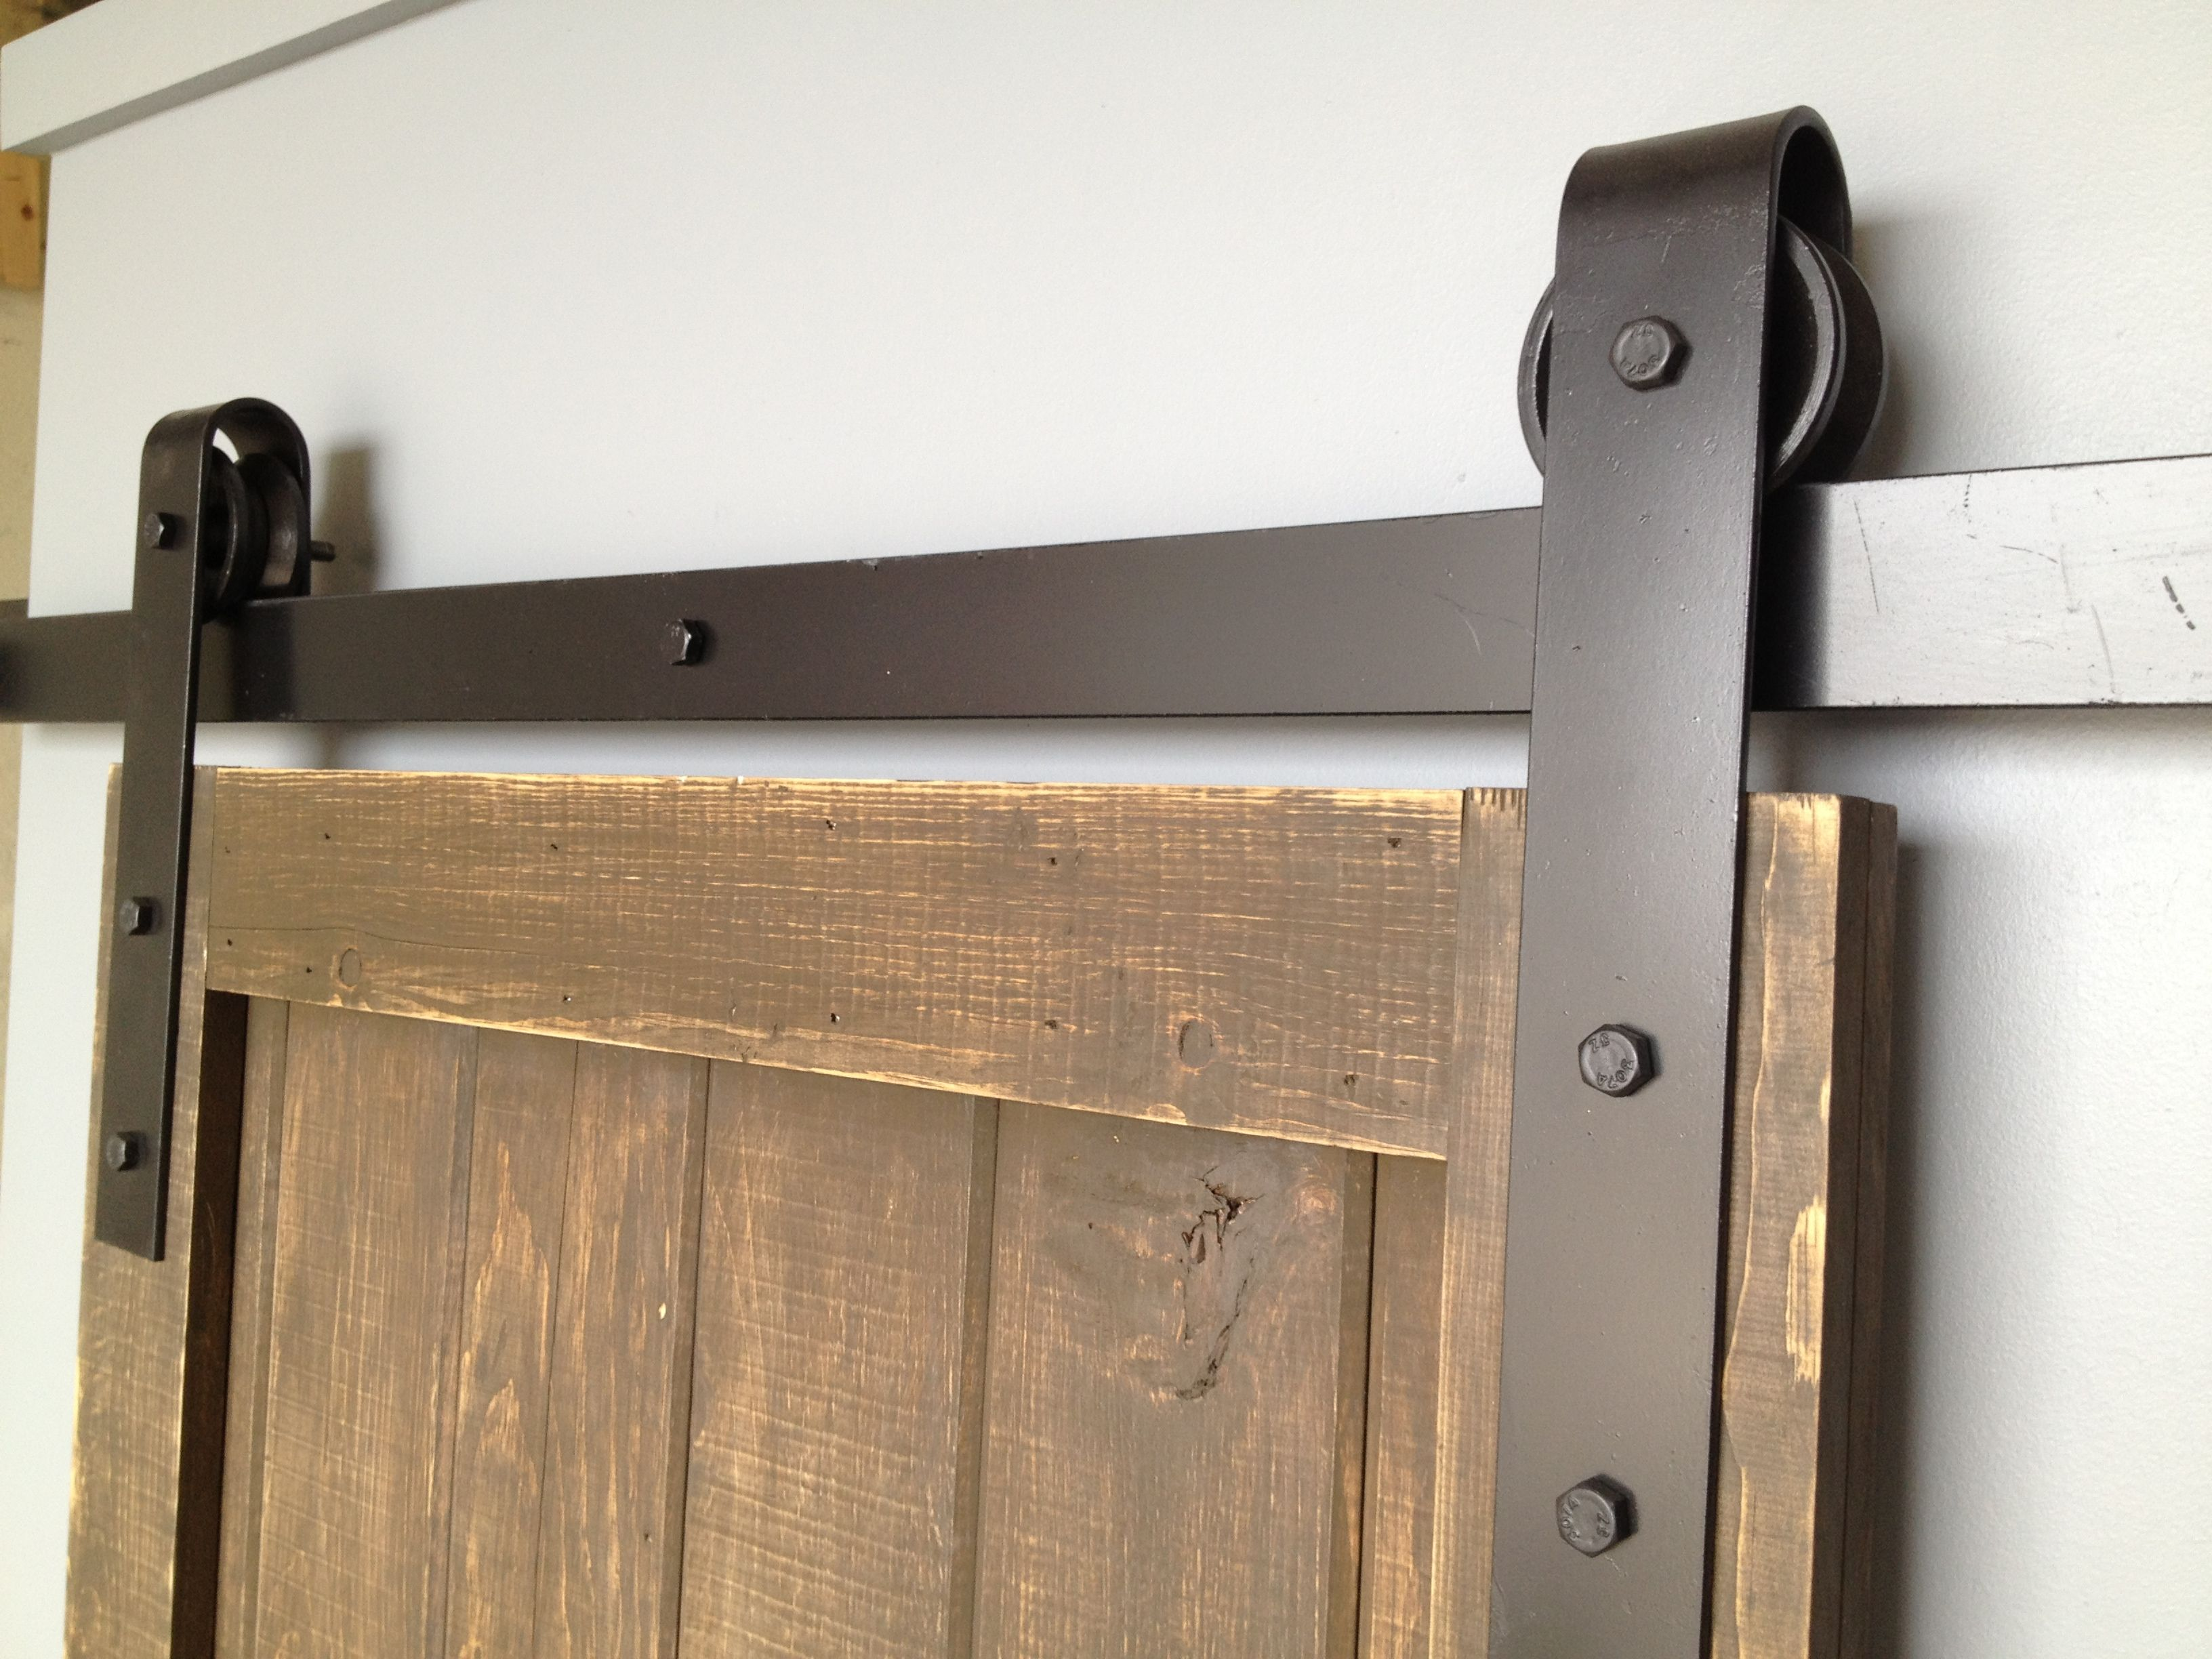 Wall mount sliding door hardware set - Rustic Sliding Barn Door Hardware With Wooden Door Piece And Old Fashioned Metal Slide